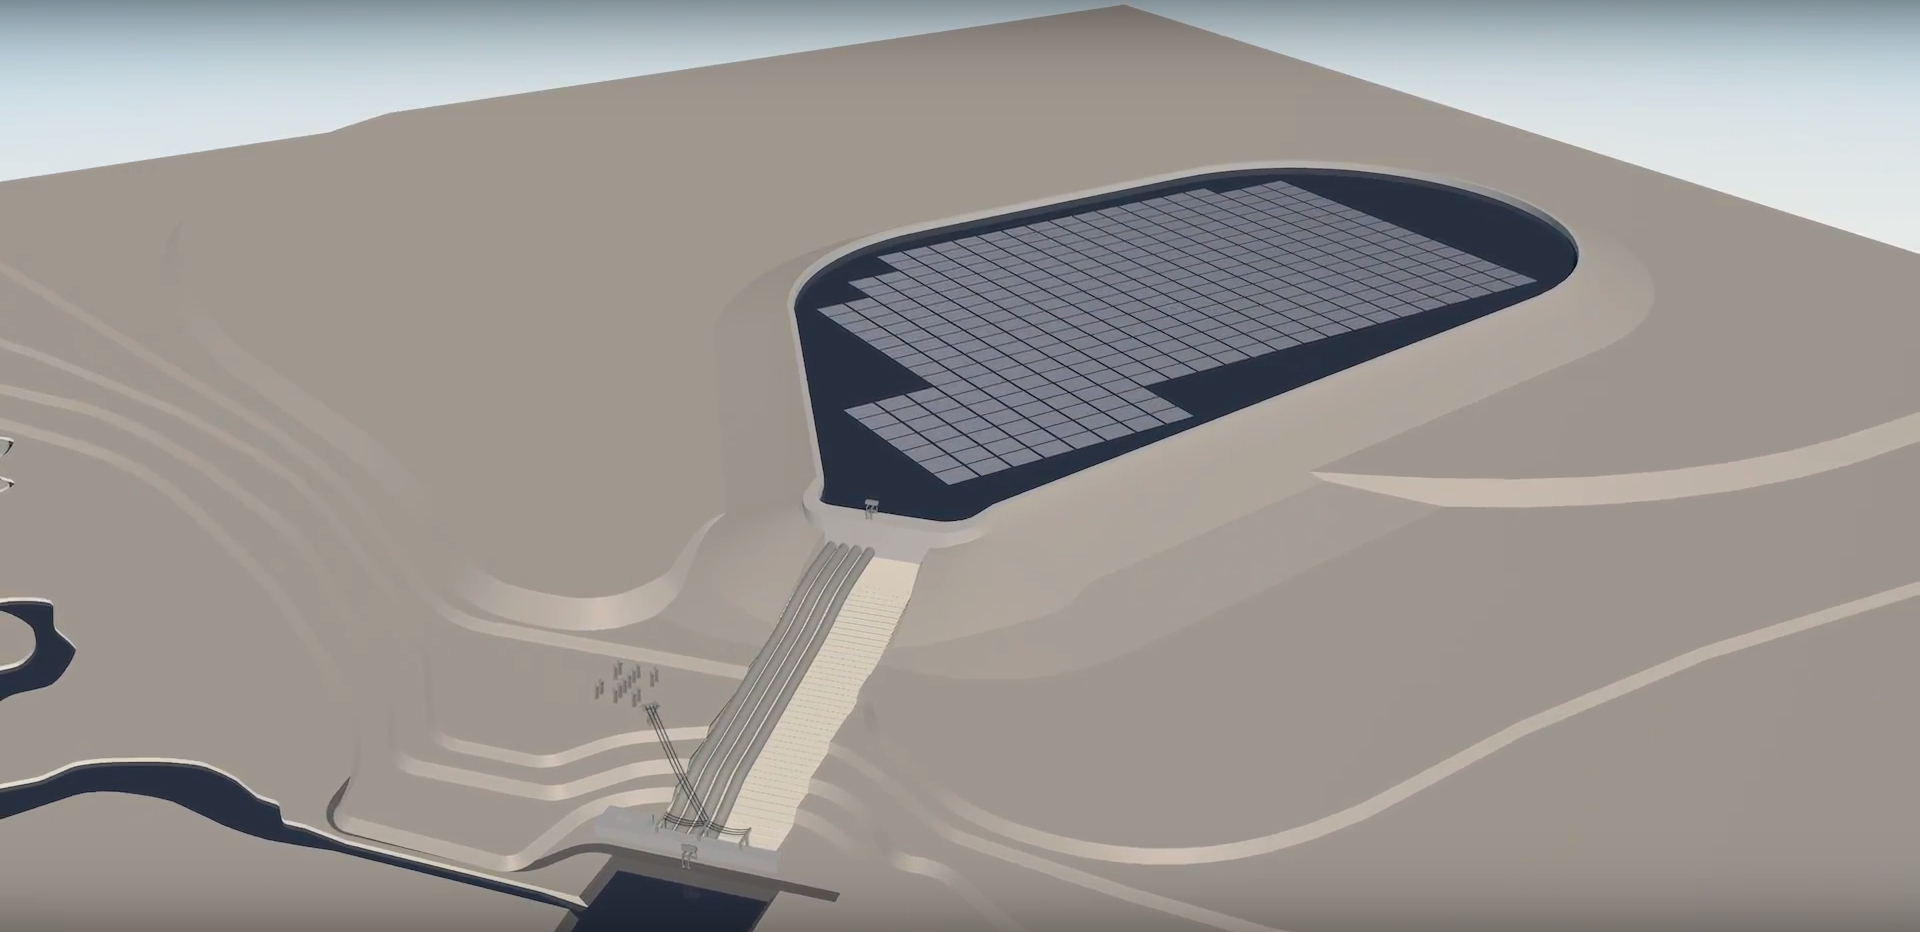 Floating solar photovoltaic plant to be installed at Kruonis pumped-storage plant in Lithuania